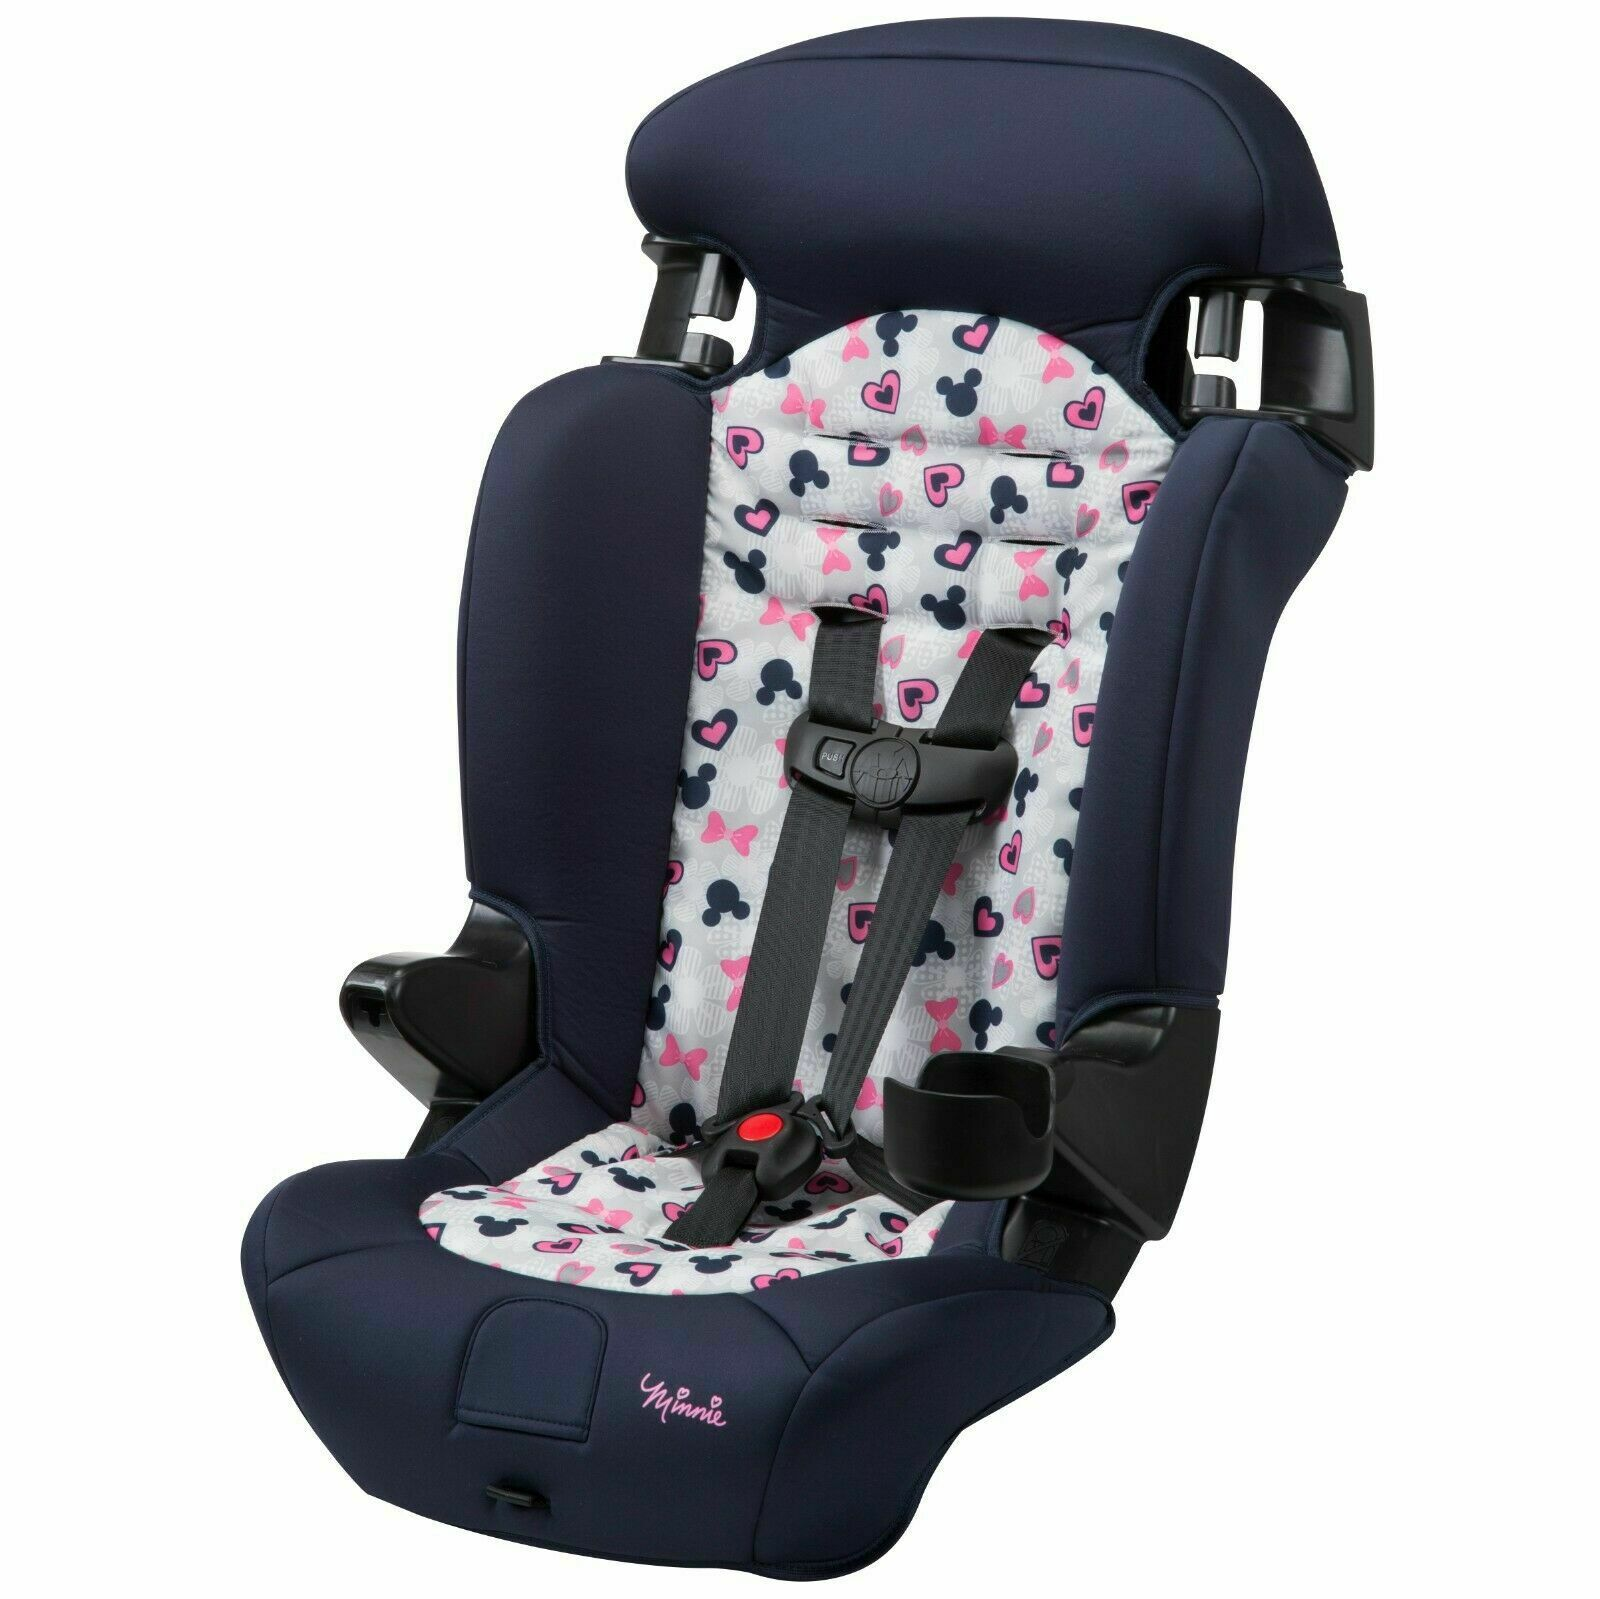 Baby Safety Convertible Car Seat 2in1 Chair Booster Highback